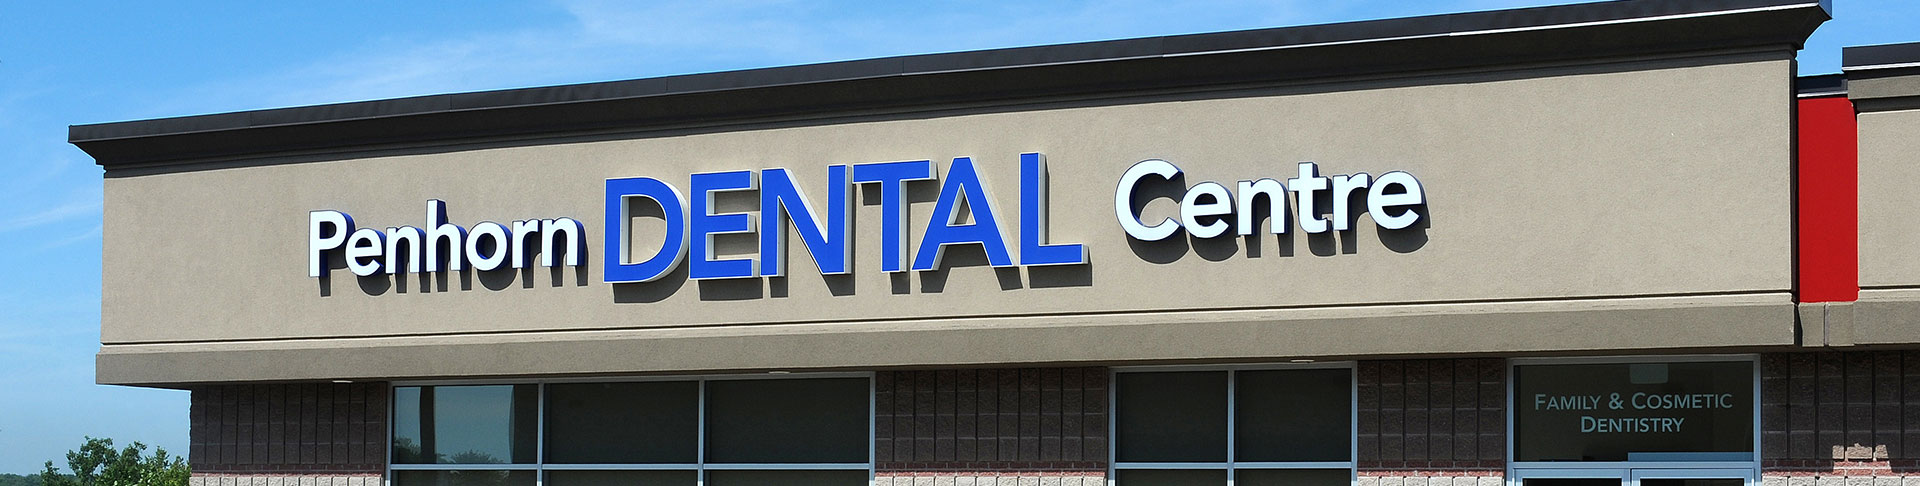 Dentists in Dartmouth | Penhorn Dental Centre